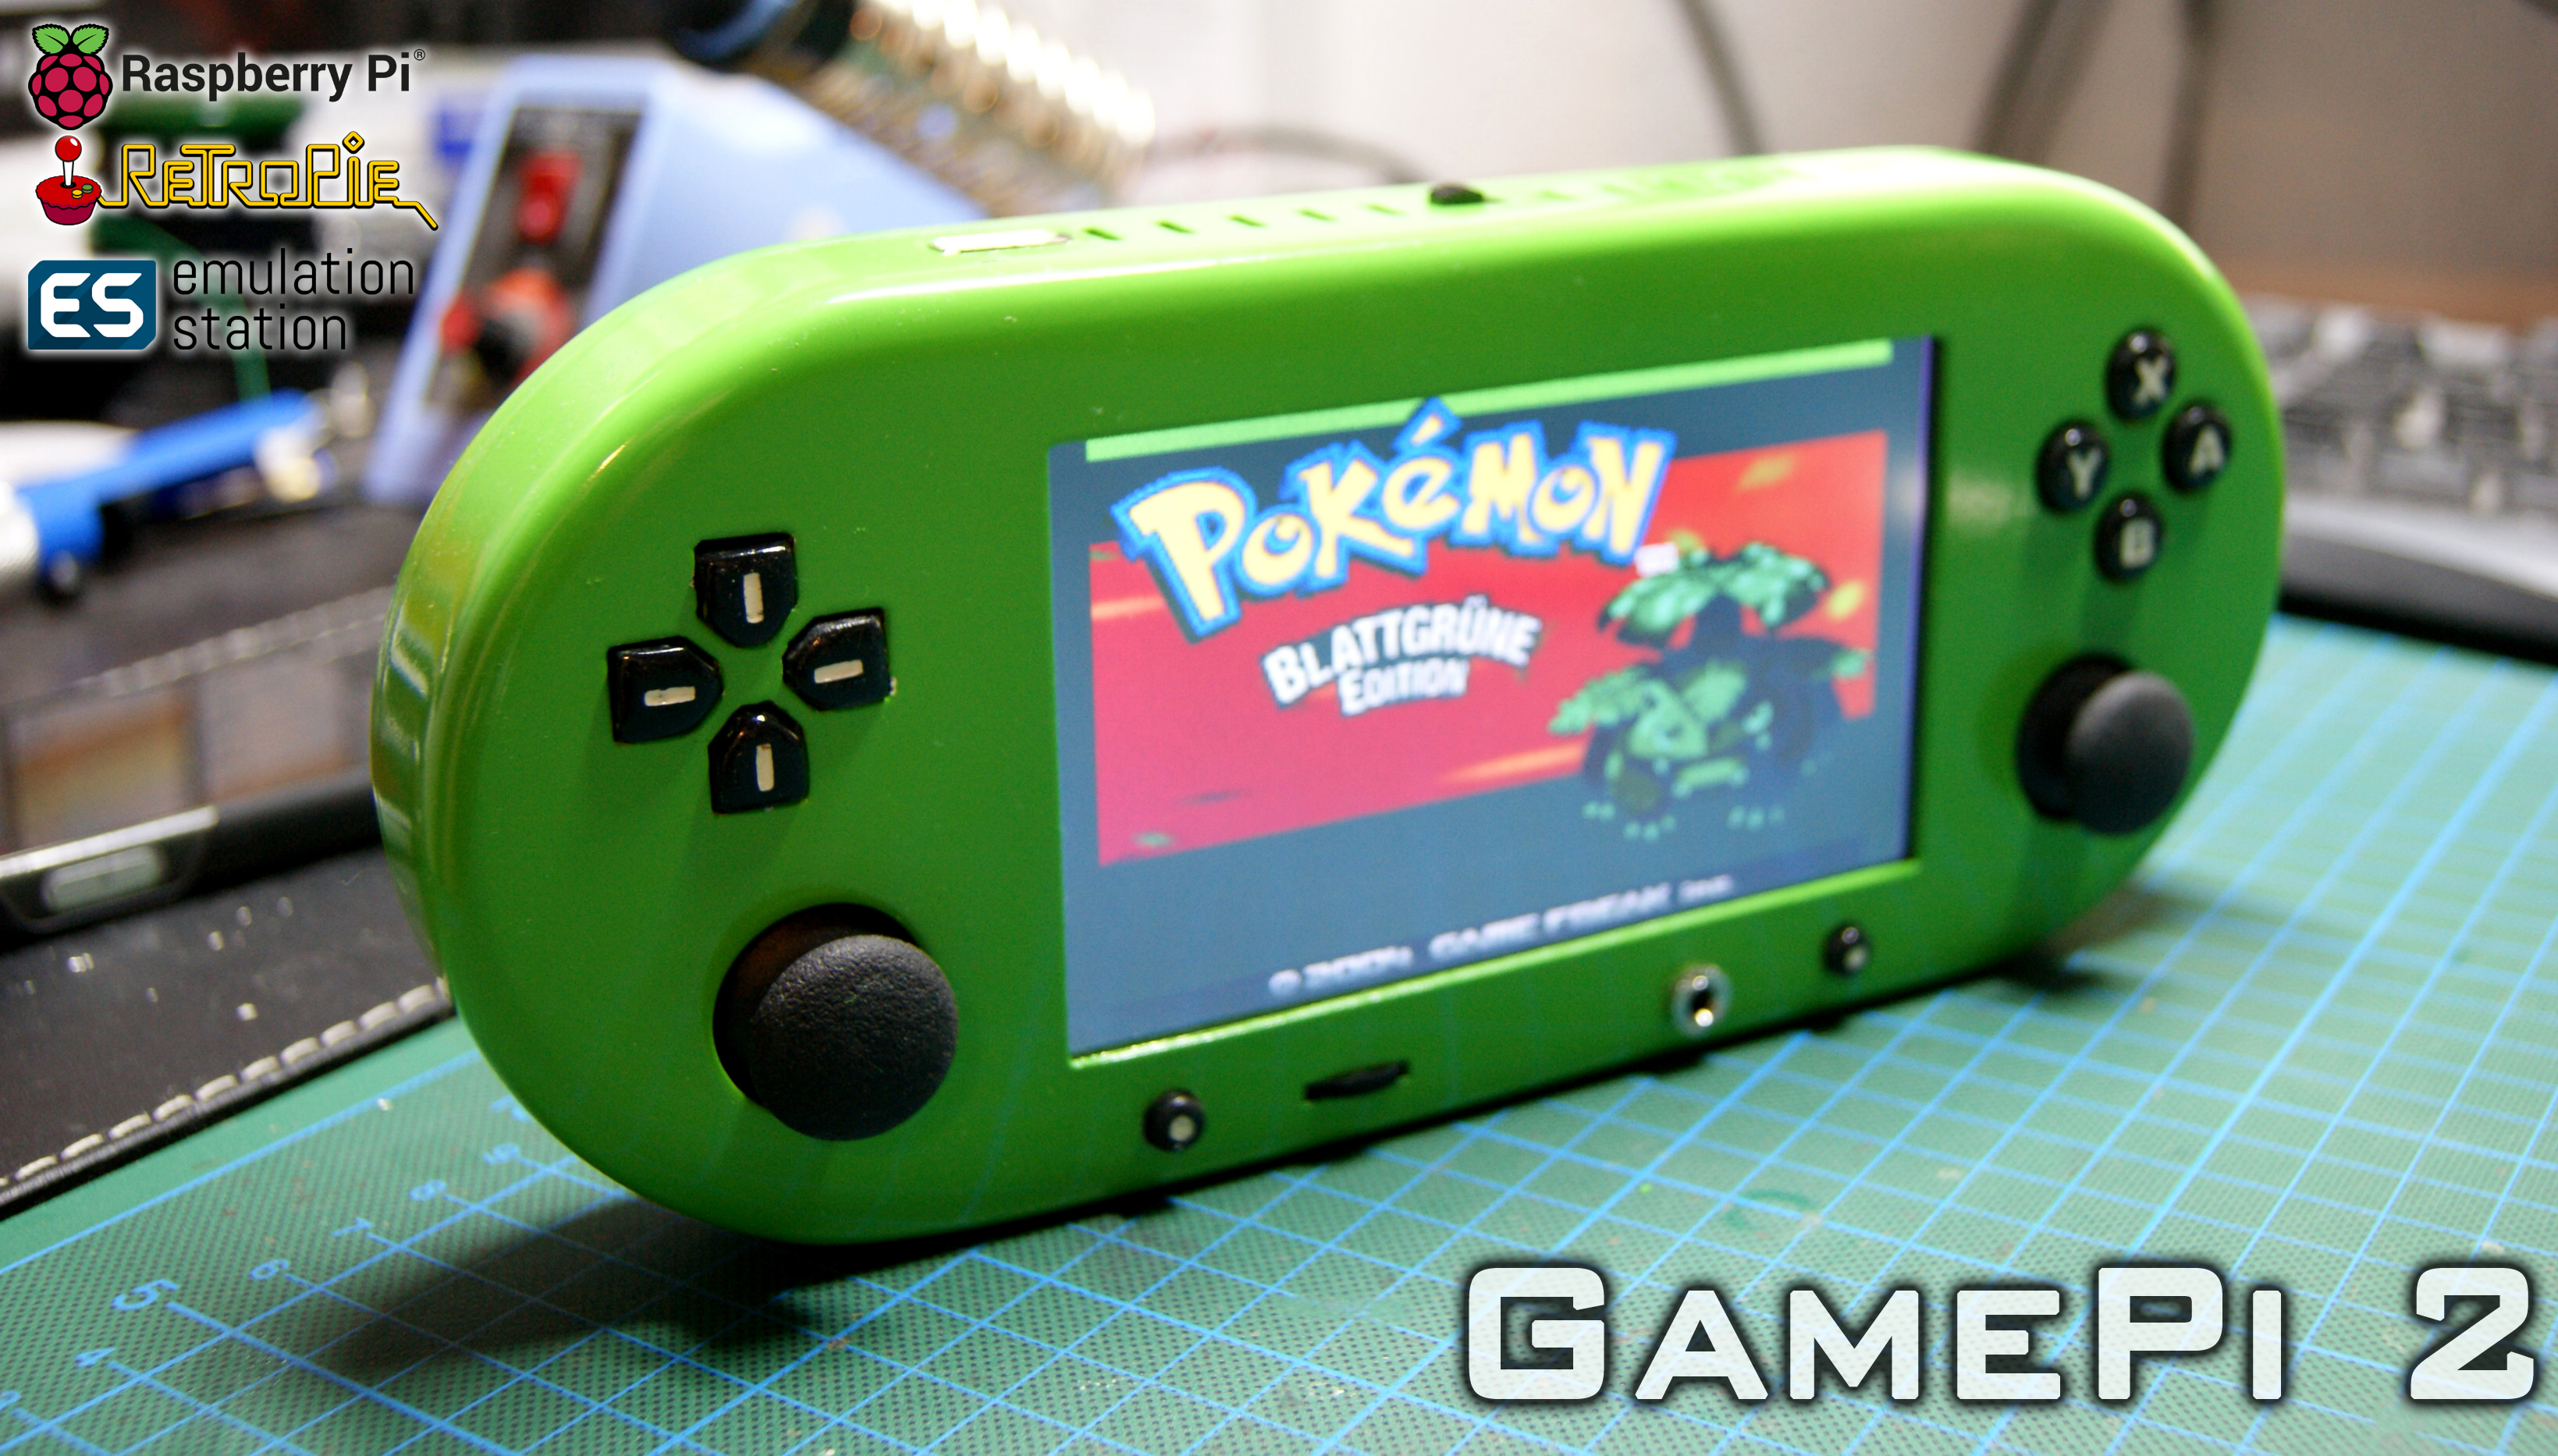 Picture of GamePi - the Handheld Emulator Console